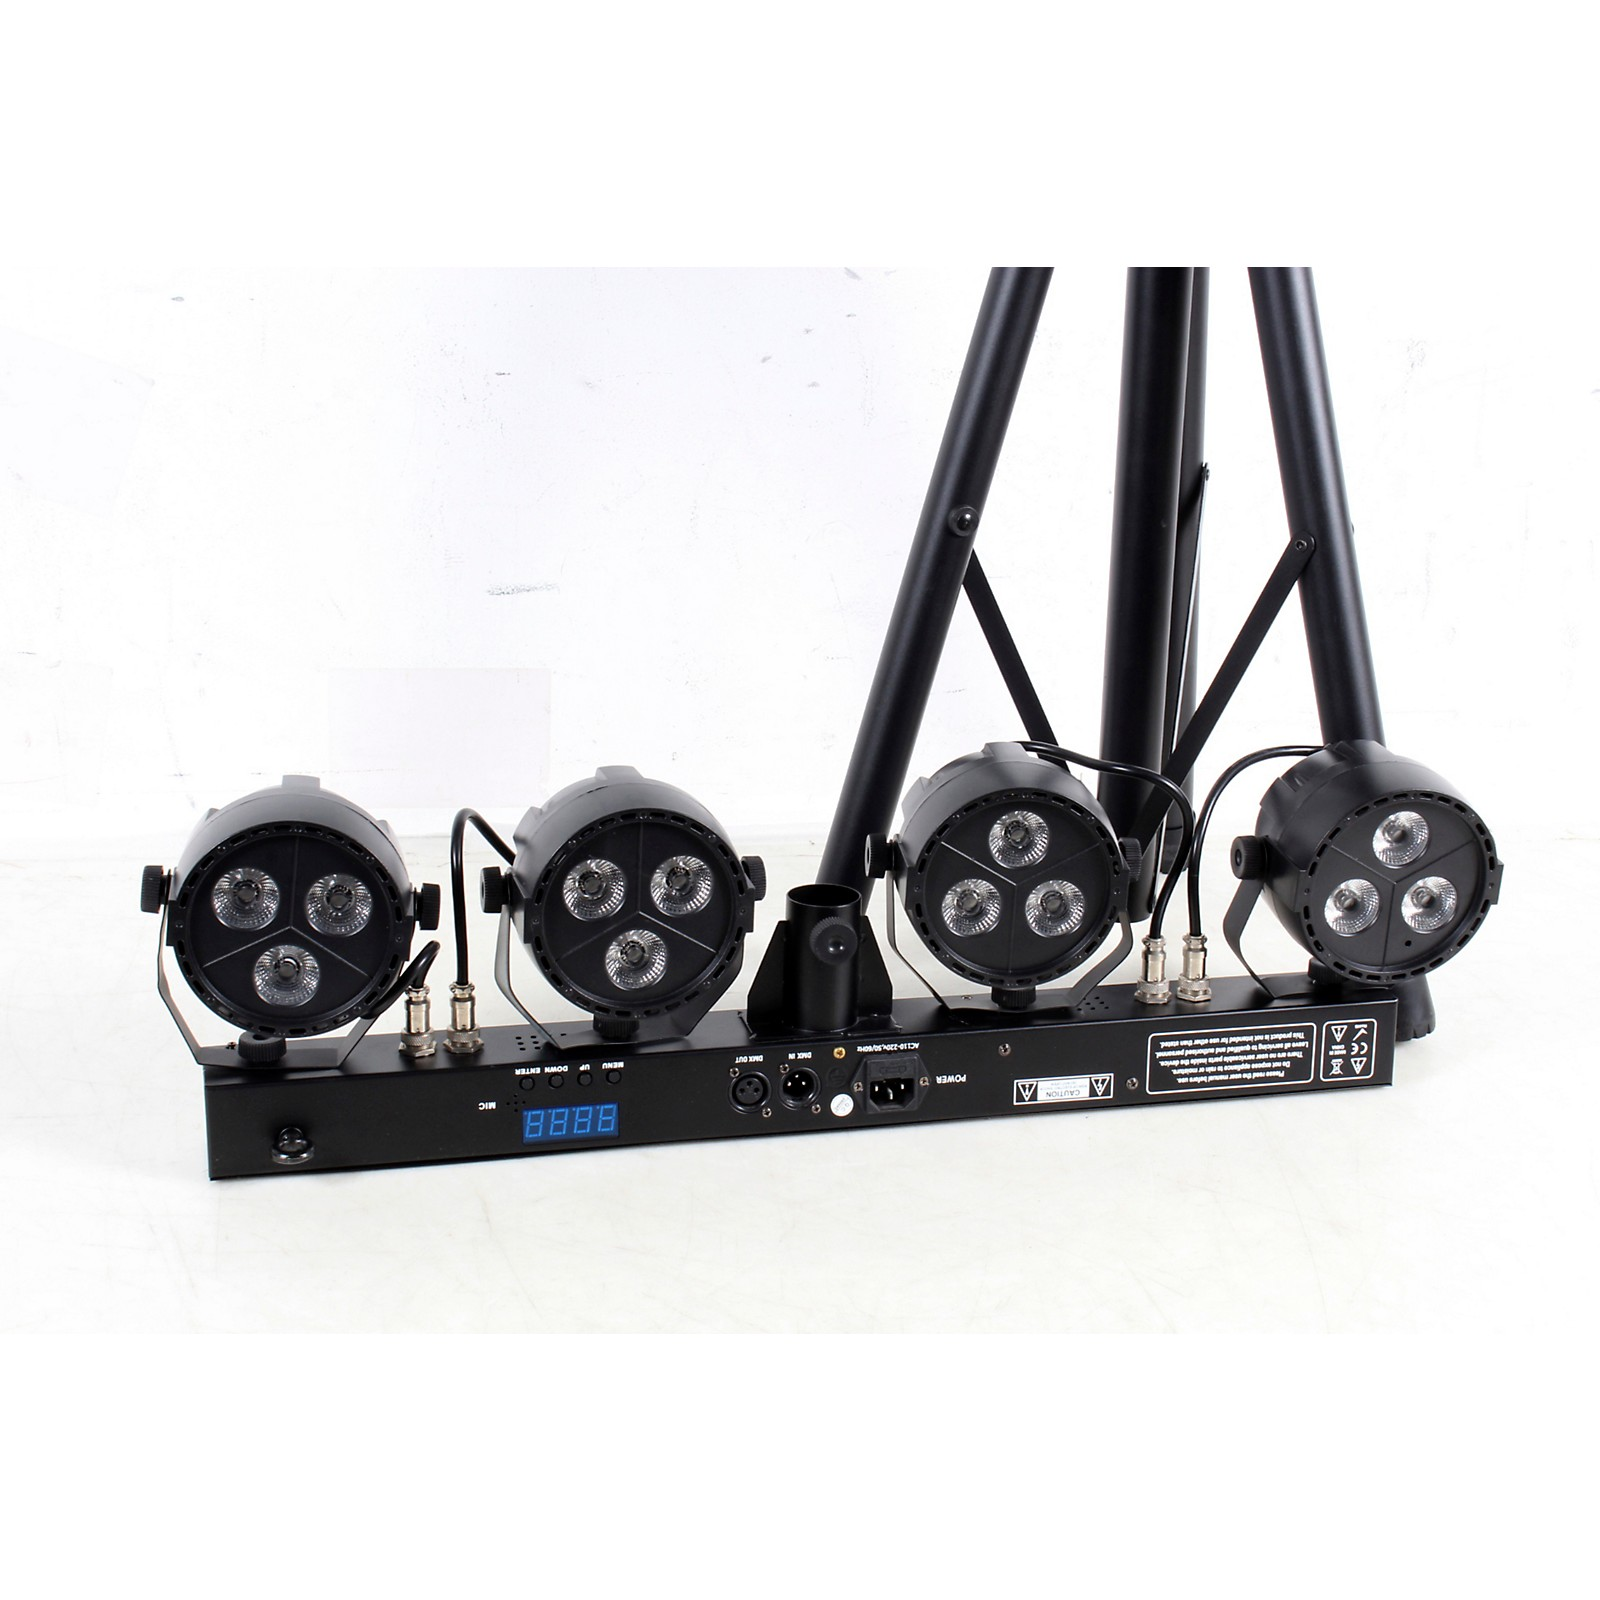 Open Box Stagg Performer Light Set RGBW LED System with Stand